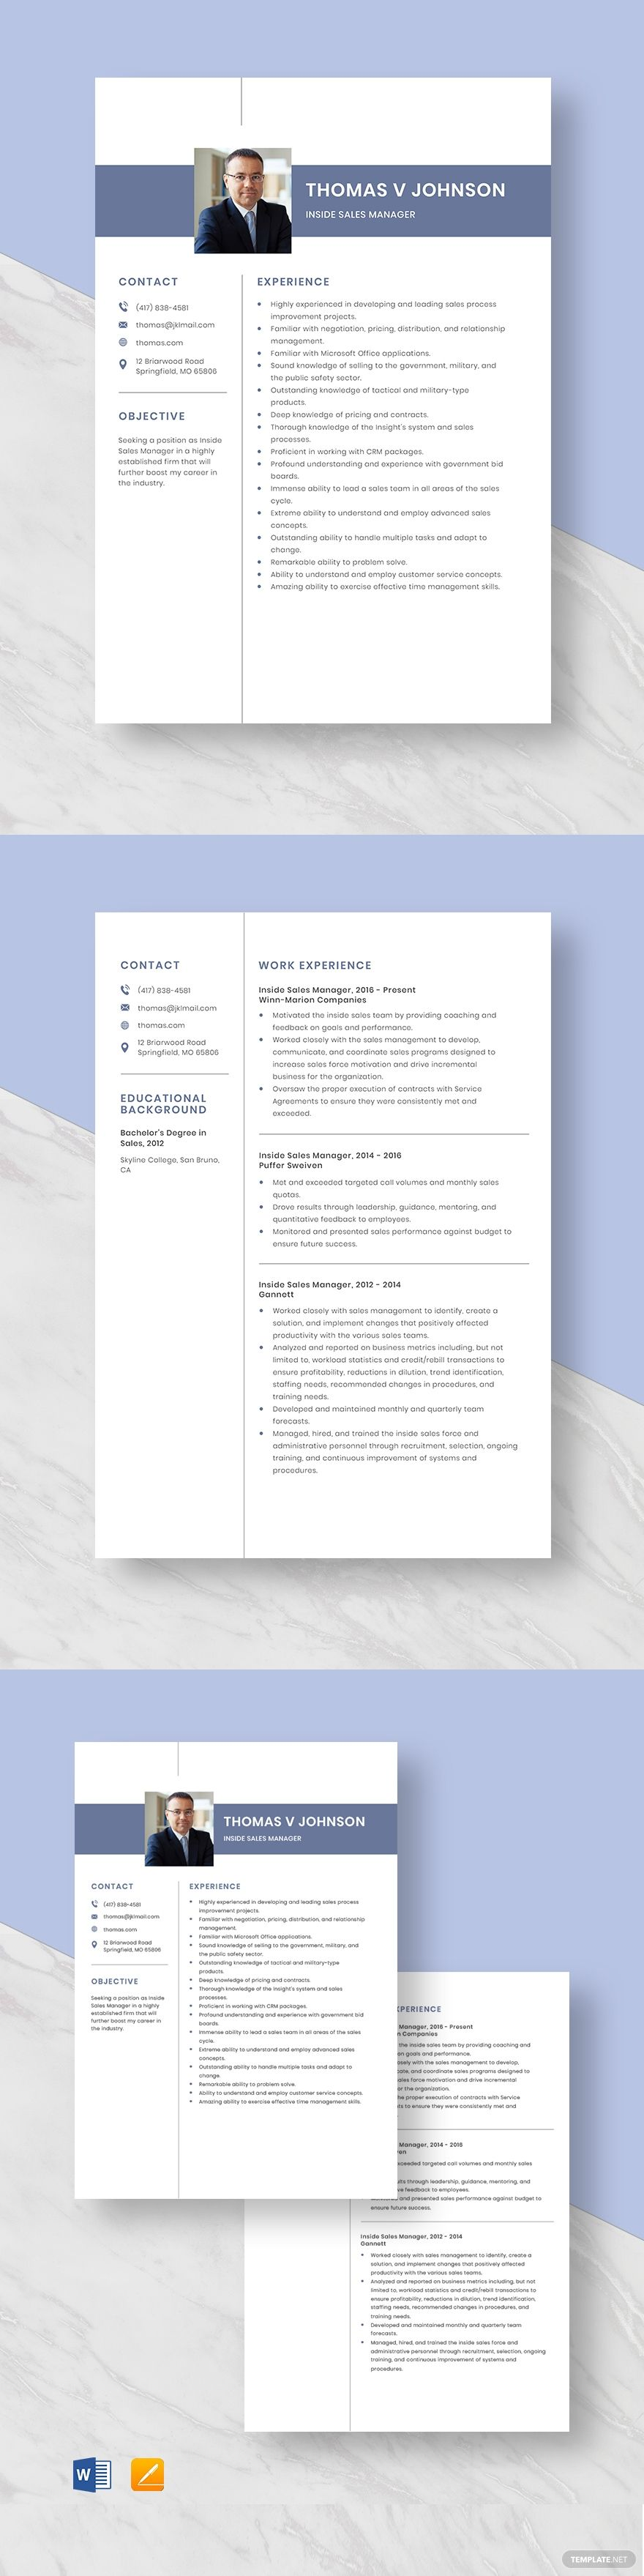 Inside sales manager resume template ad sponsored